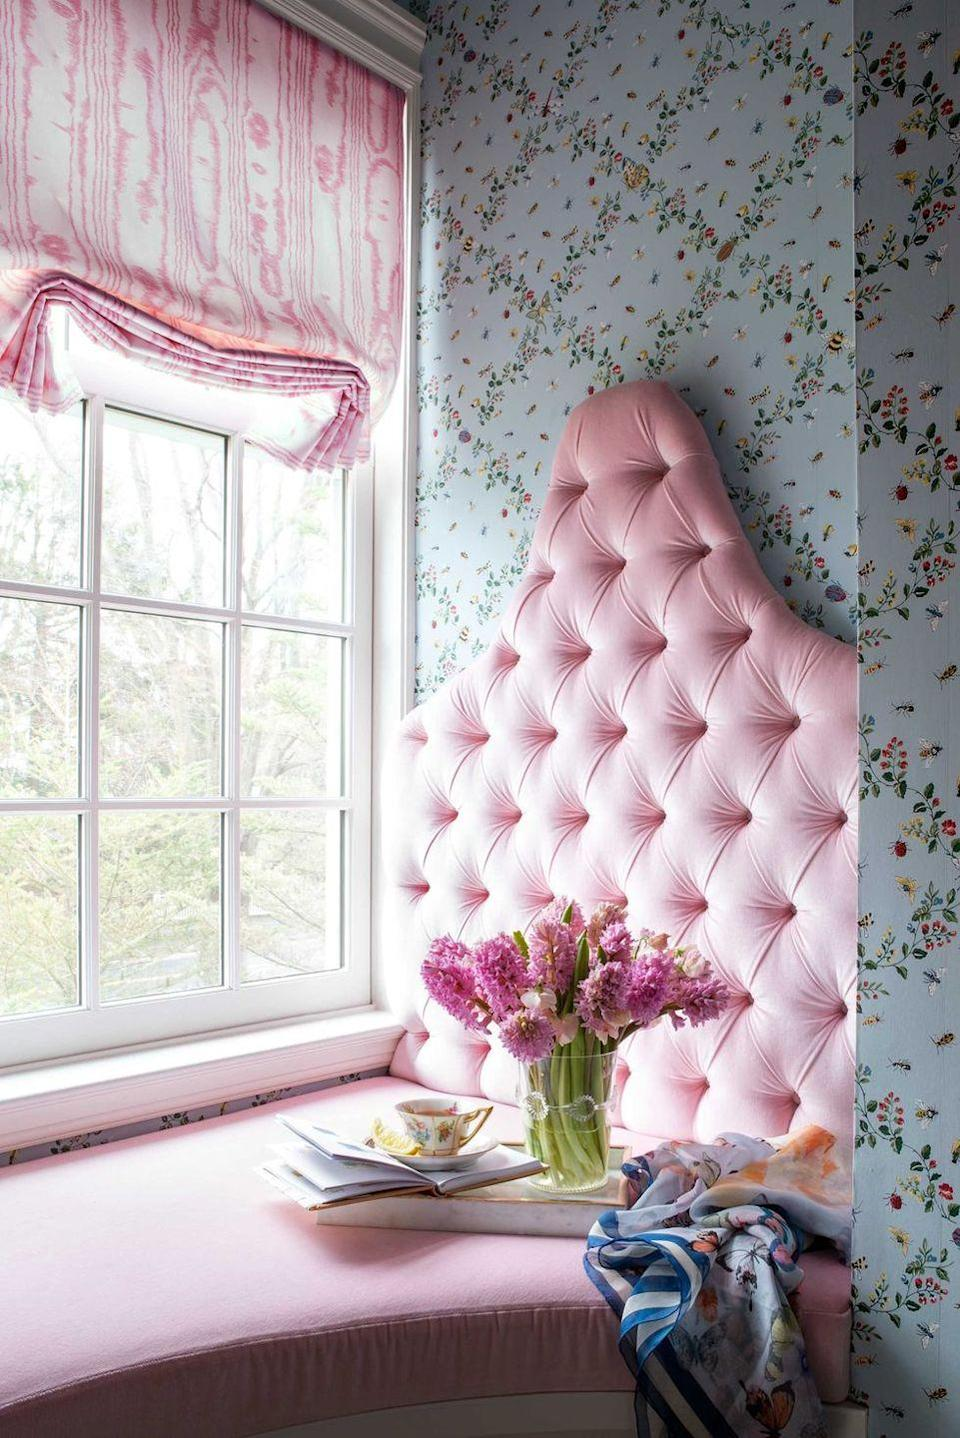 """<p>If their bedroom is big enough, carve out a little window seat in the corner so they have somewhere private to relax and hang out. Have fun with things like upholstery, headboards, and curtains, like <a href=""""https://brookecrewinteriors.com/"""" rel=""""nofollow noopener"""" target=""""_blank"""" data-ylk=""""slk:Brooke Crew"""" class=""""link rapid-noclick-resp"""">Brooke Crew</a> did here. And of course, wallpaper is another easy way to bring in color and a fun print. Opt for the removable kind or choose a permanent one you both love. </p>"""